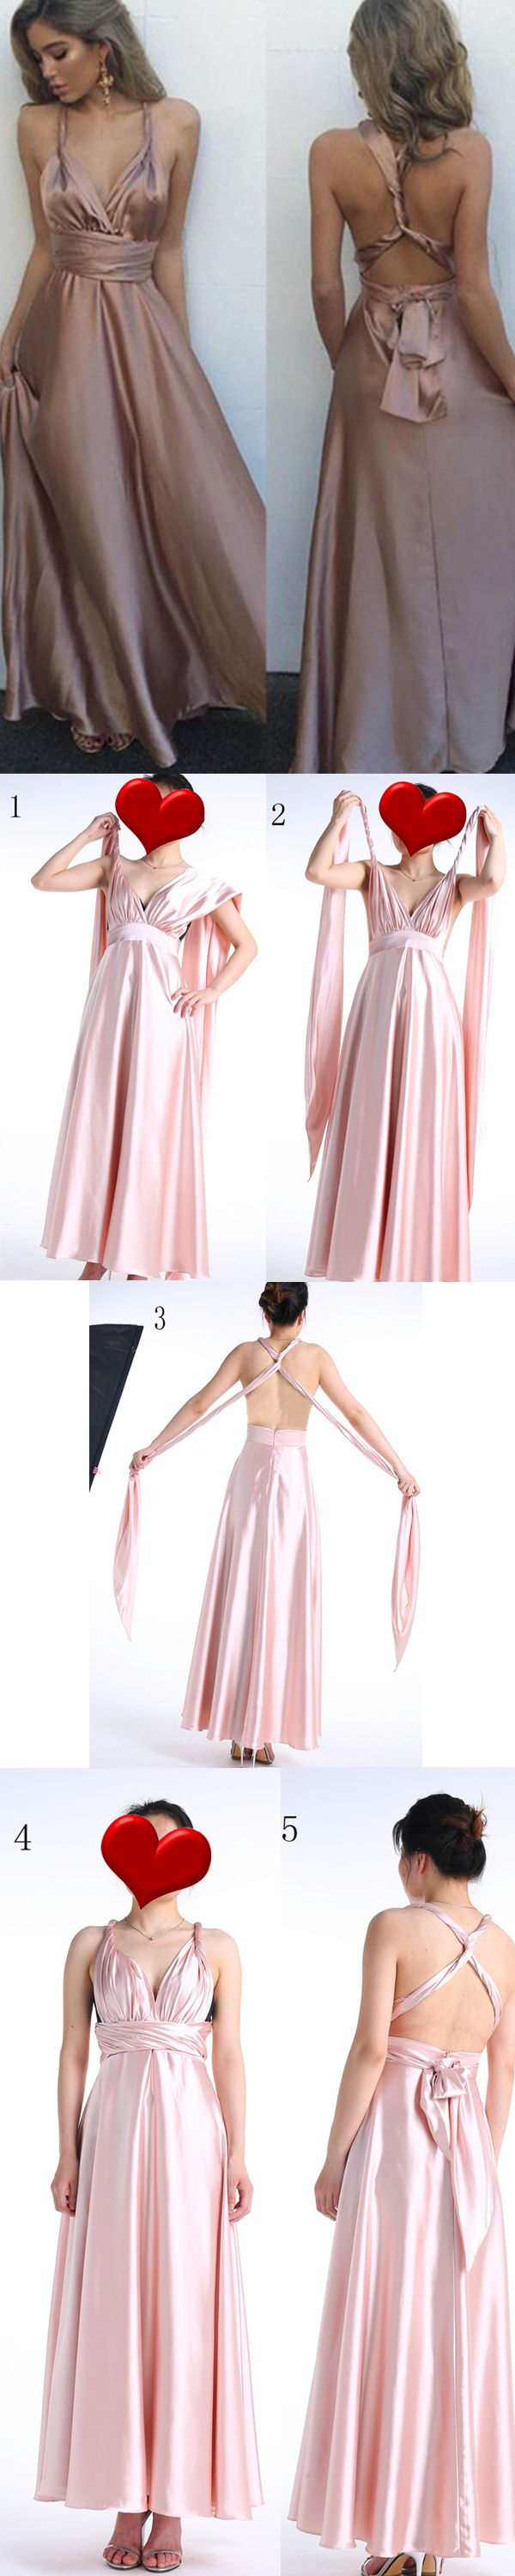 Different ways to wear this prom/bridesmaid dress. v neck prom dresses, blush prom dresses, 2017 prom dresses, multi wear prom dresses, long prom dresses